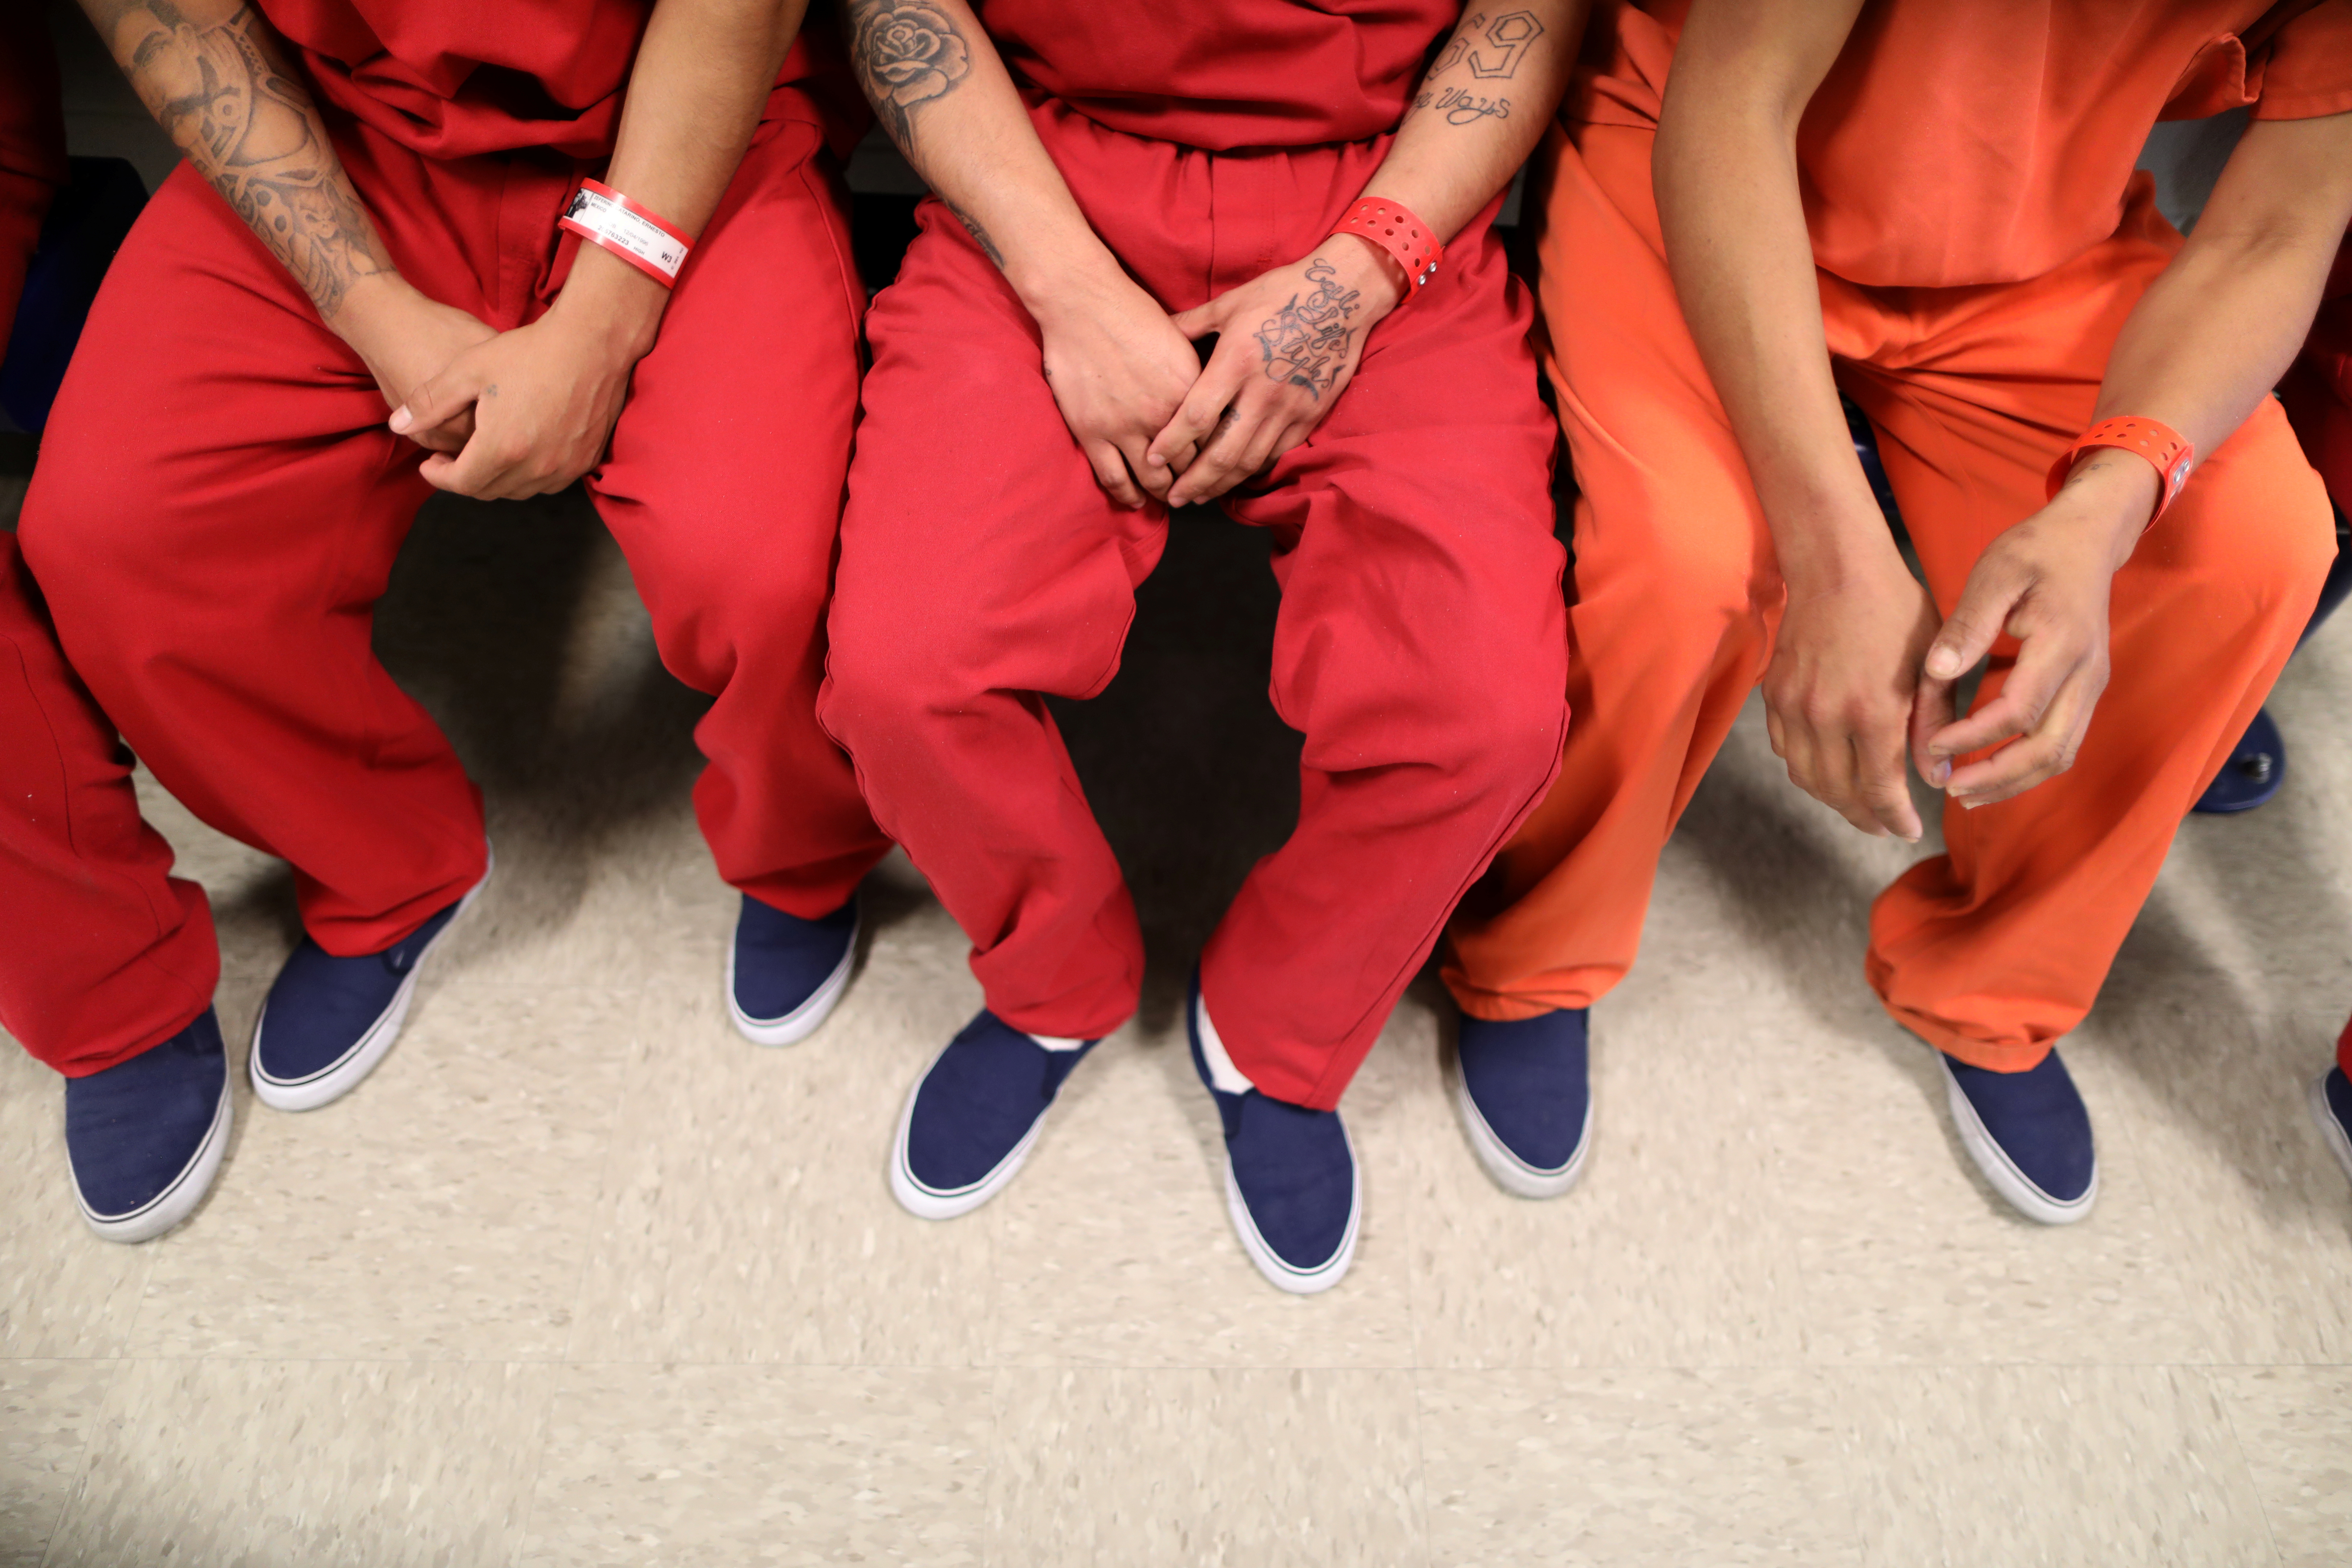 FILE - Immigration and Customs Enforcement detainees are seen at at a detention center in Adelanto, Calif., April 13, 2017.